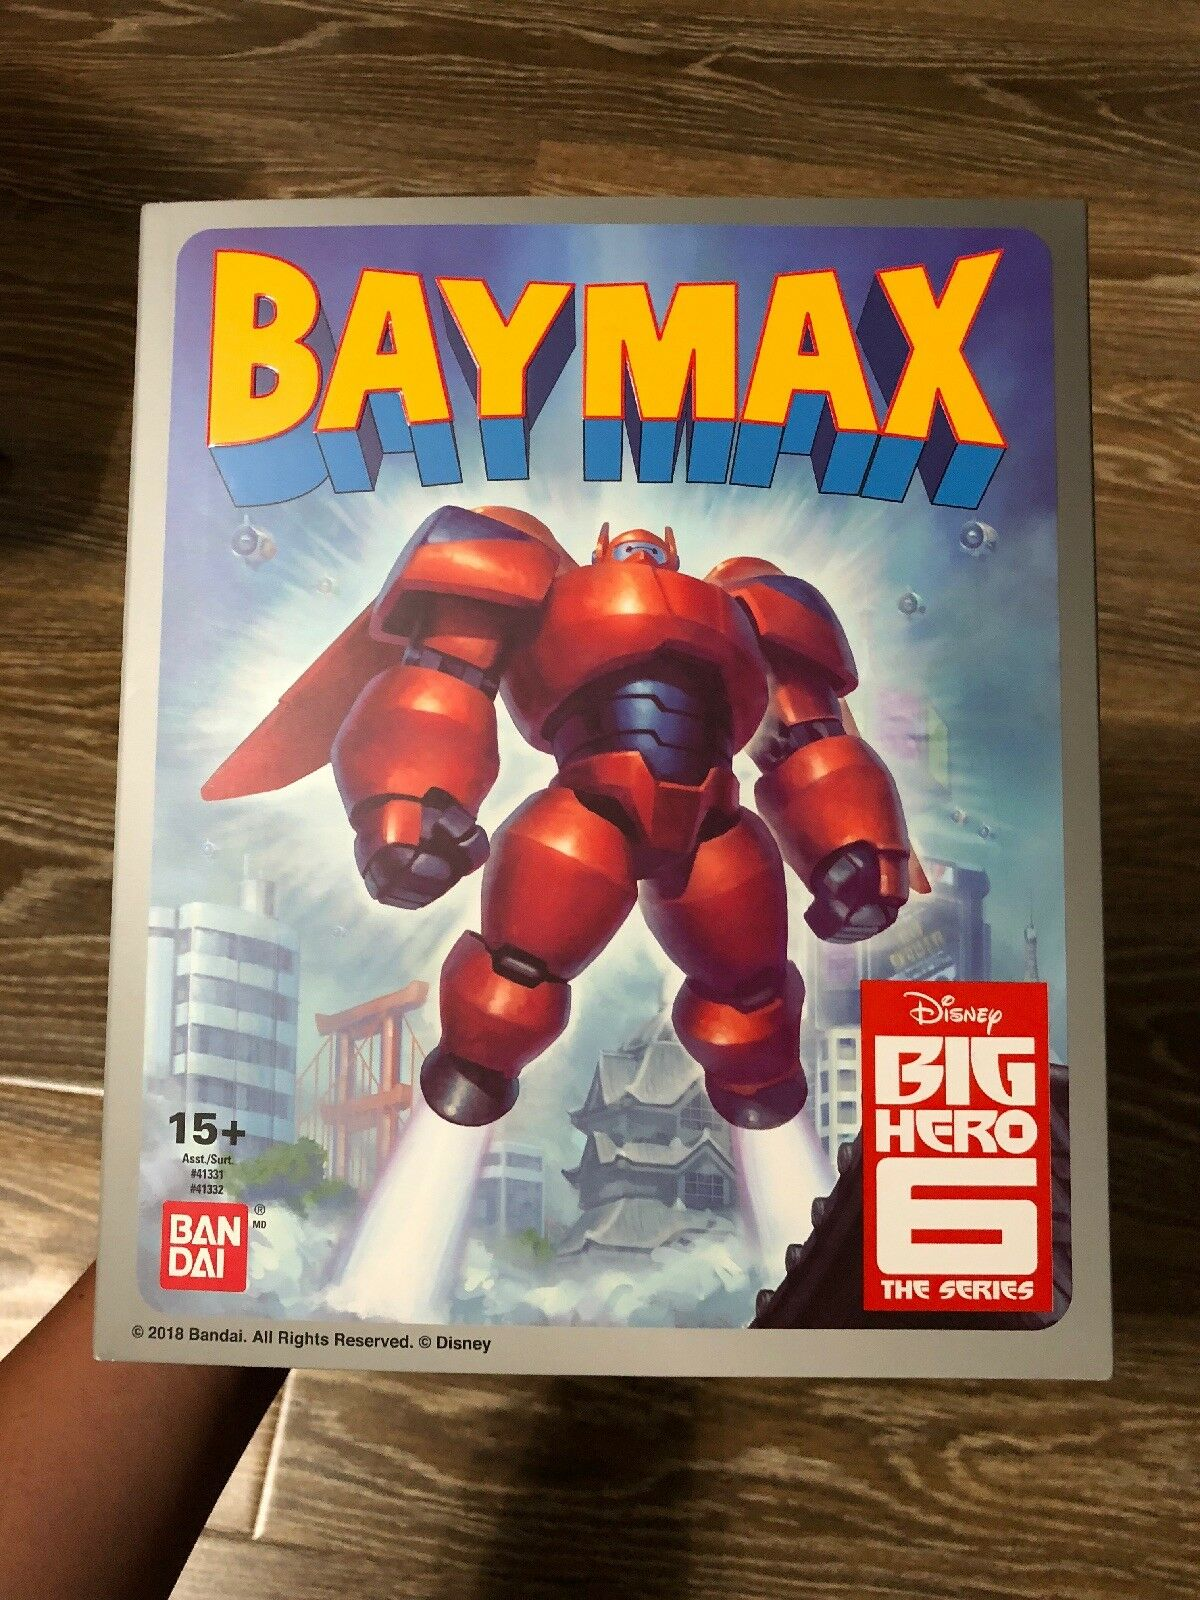 SDCC SDCC SDCC 2018 BANDAI EXCLUSIVE DIECAST ARMORED BAYMAX -- BIG HERO 6 444edc